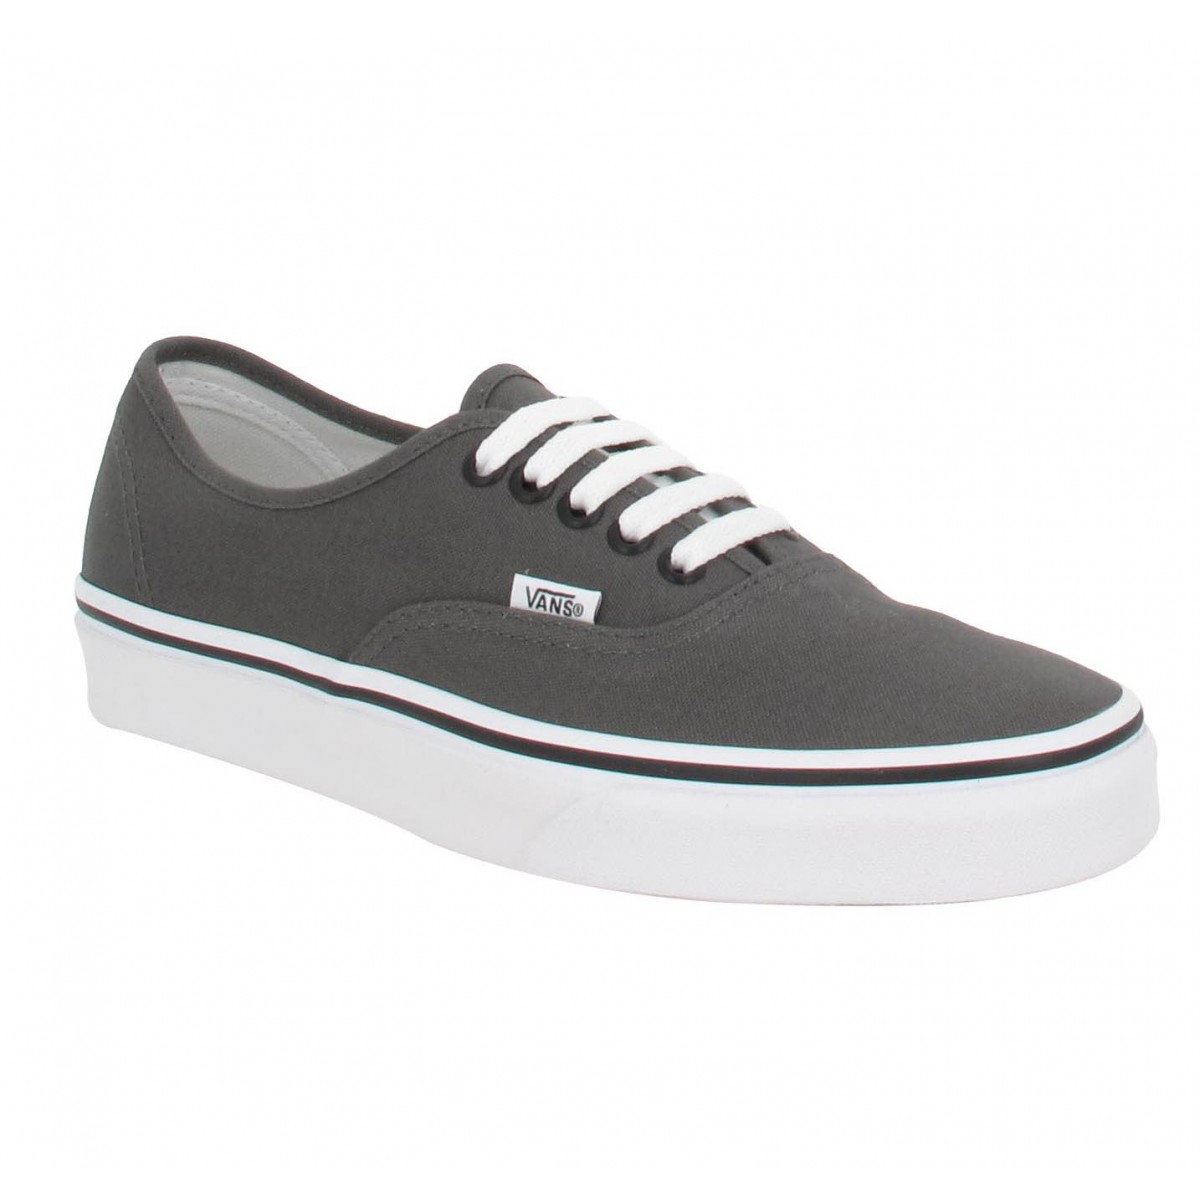 Baskets VANS Authentic toile Homme Gris